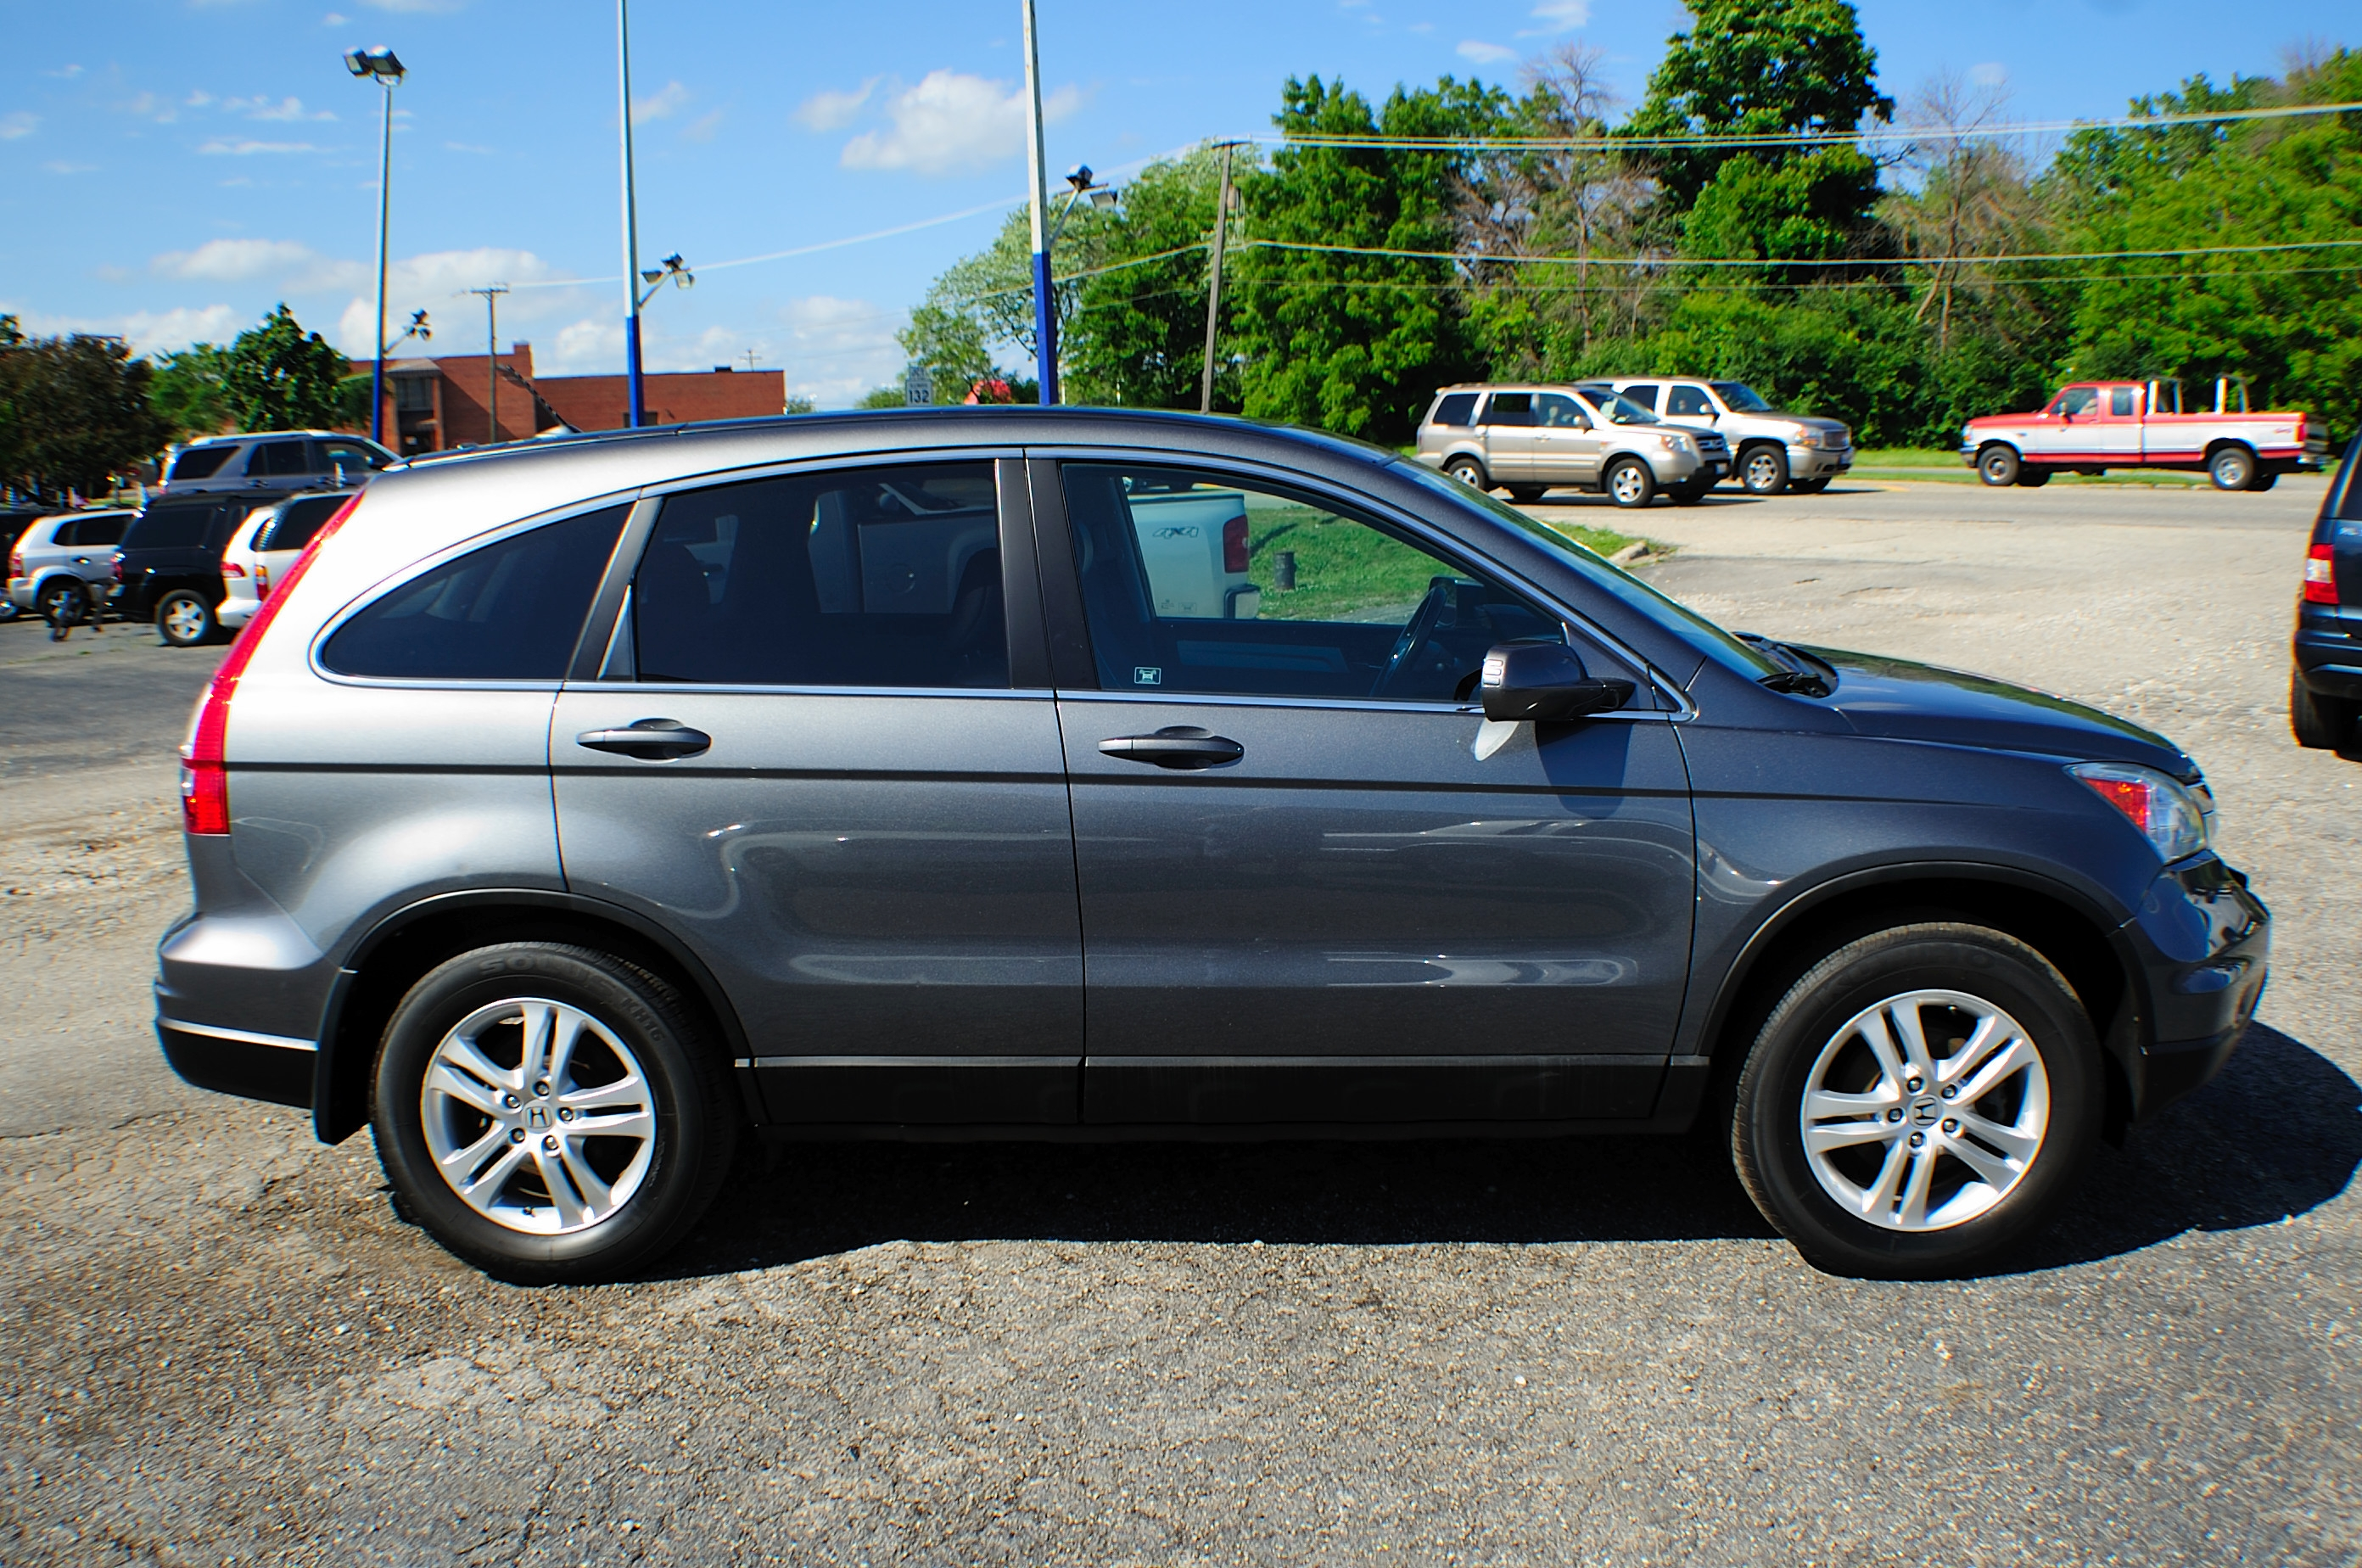 Honda Dealers Illinois >> 2010 Honda CRV Gray Metallic 4x4 SUV Navigation Used Car Sale